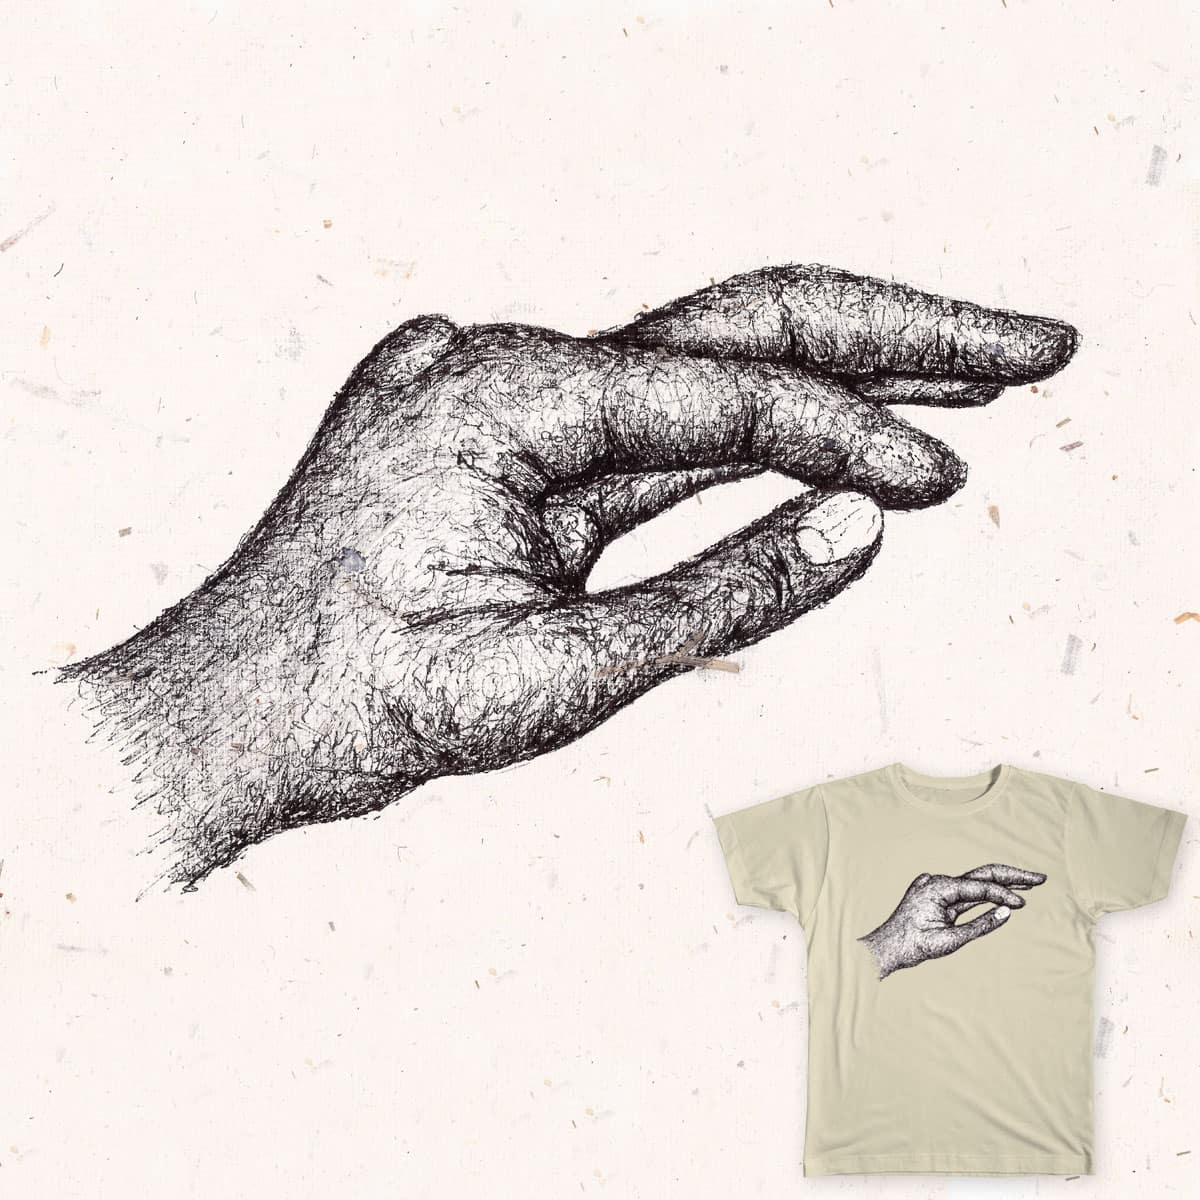 Pinched by Astrovix on Threadless